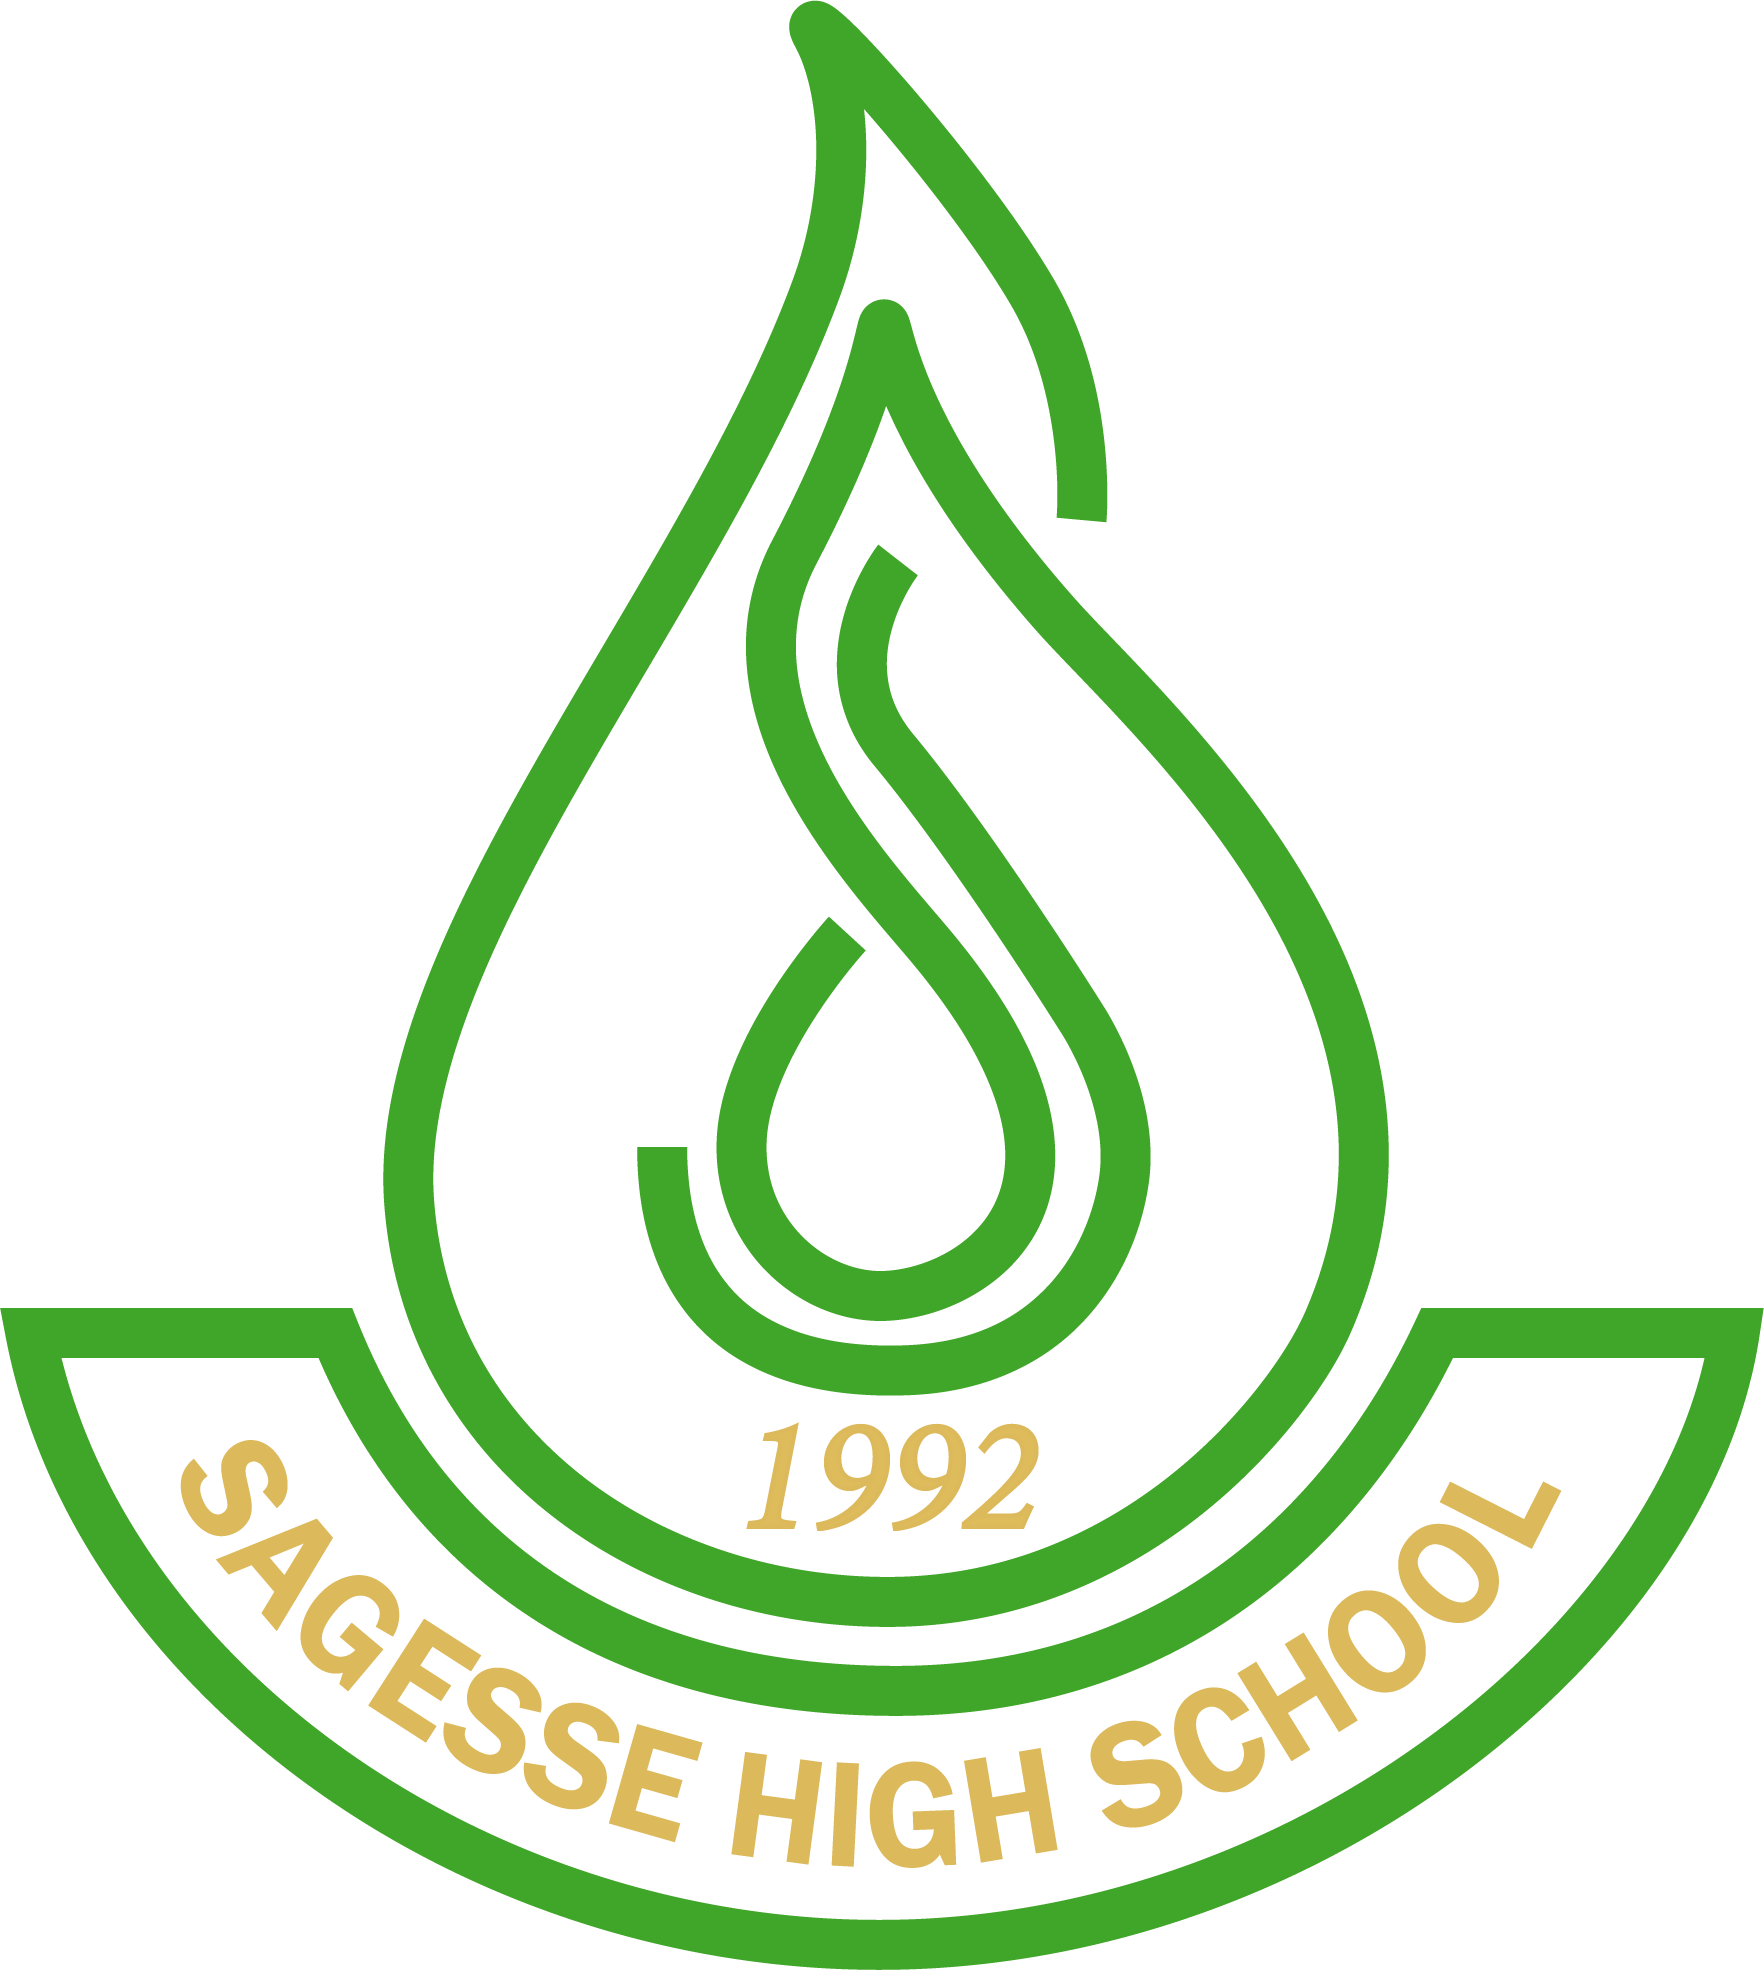 Sagesse High School